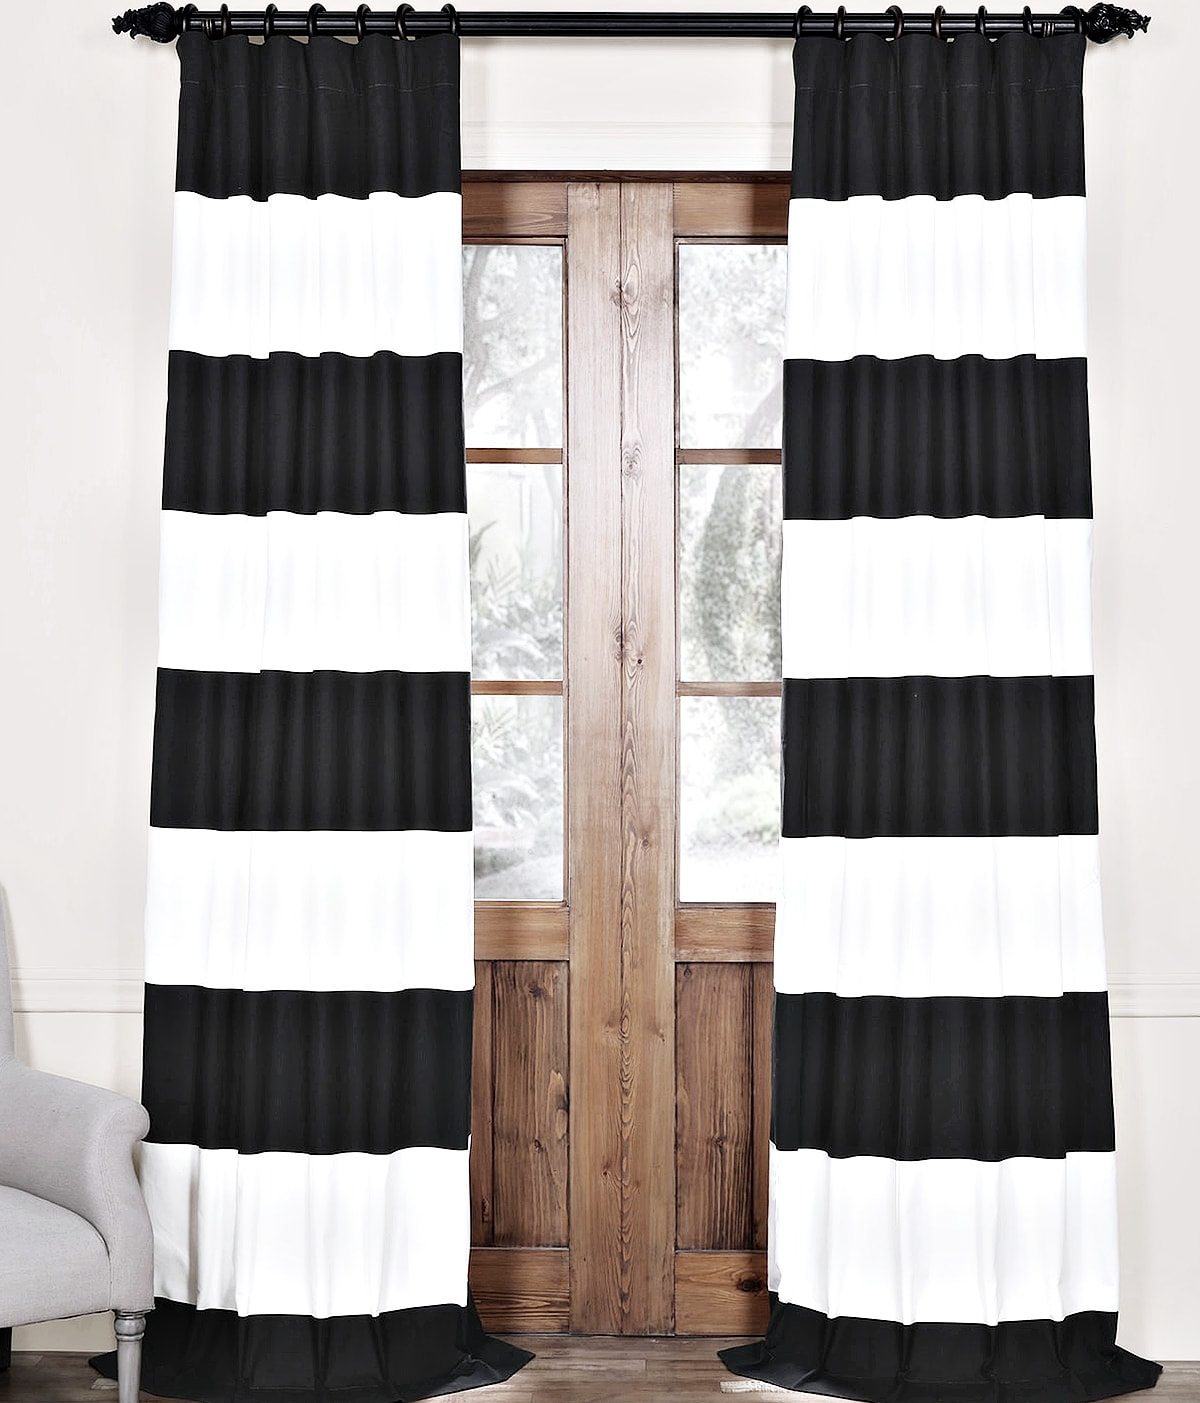 Where to buy horizontal striped curtains buy john lewis for Where to buy curtains online